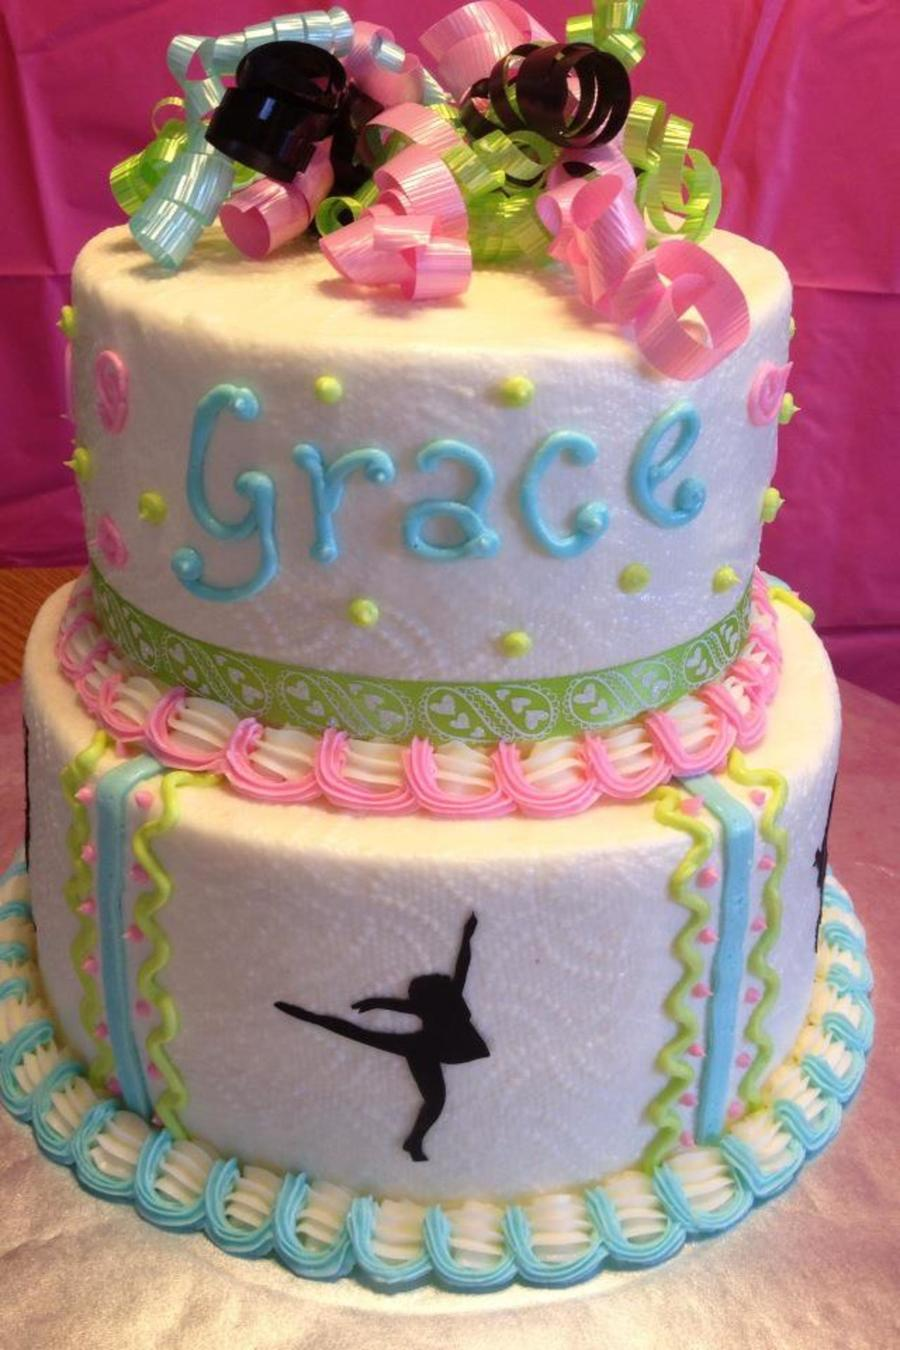 Dancer Birthday Cake on Cake Central